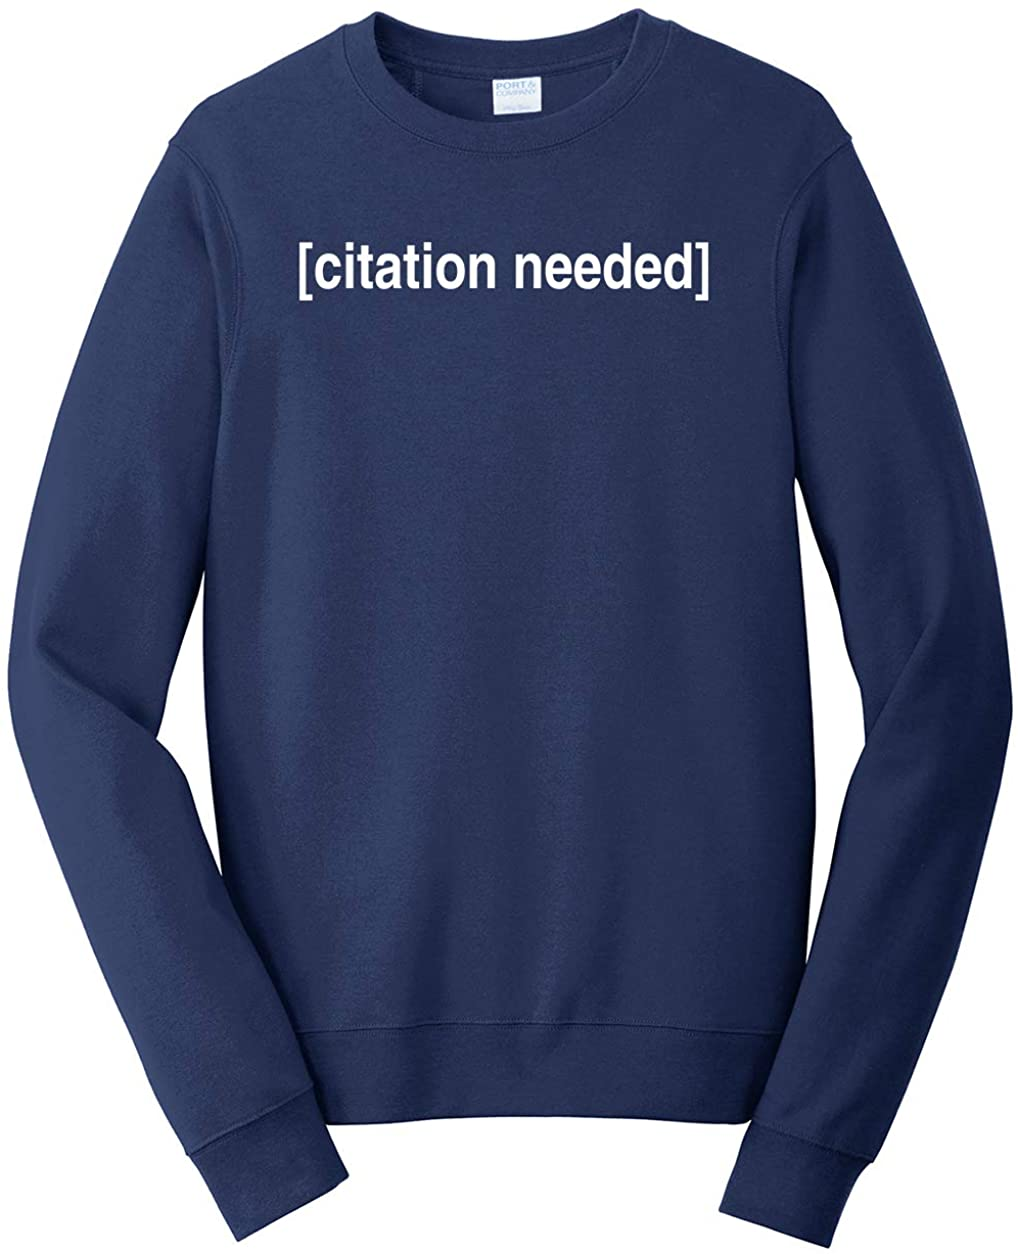 Tenacitee Men's Citation Needed Sweatshirt